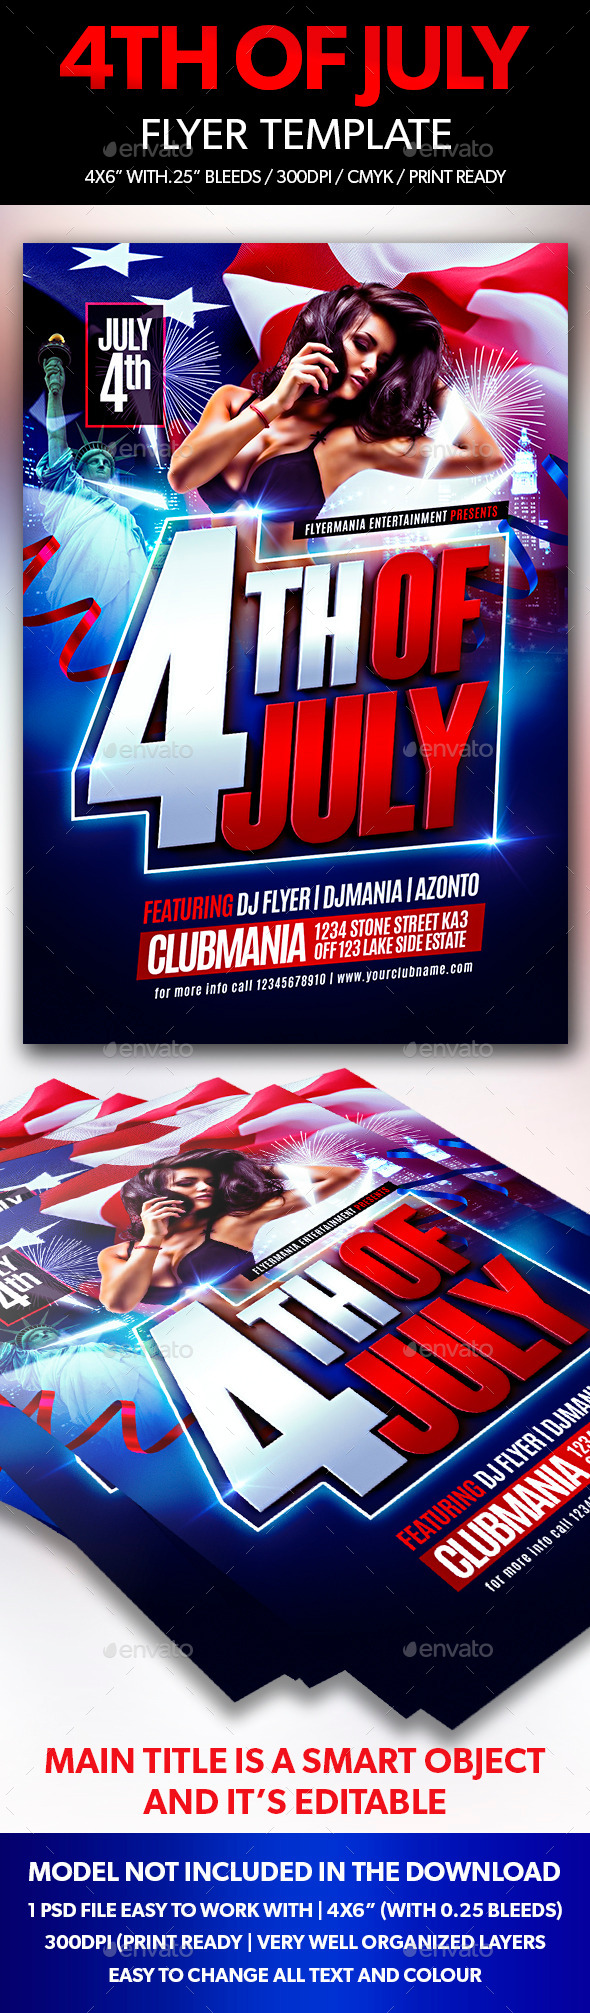 GraphicRiver 4th of July Flyer Template 11640282